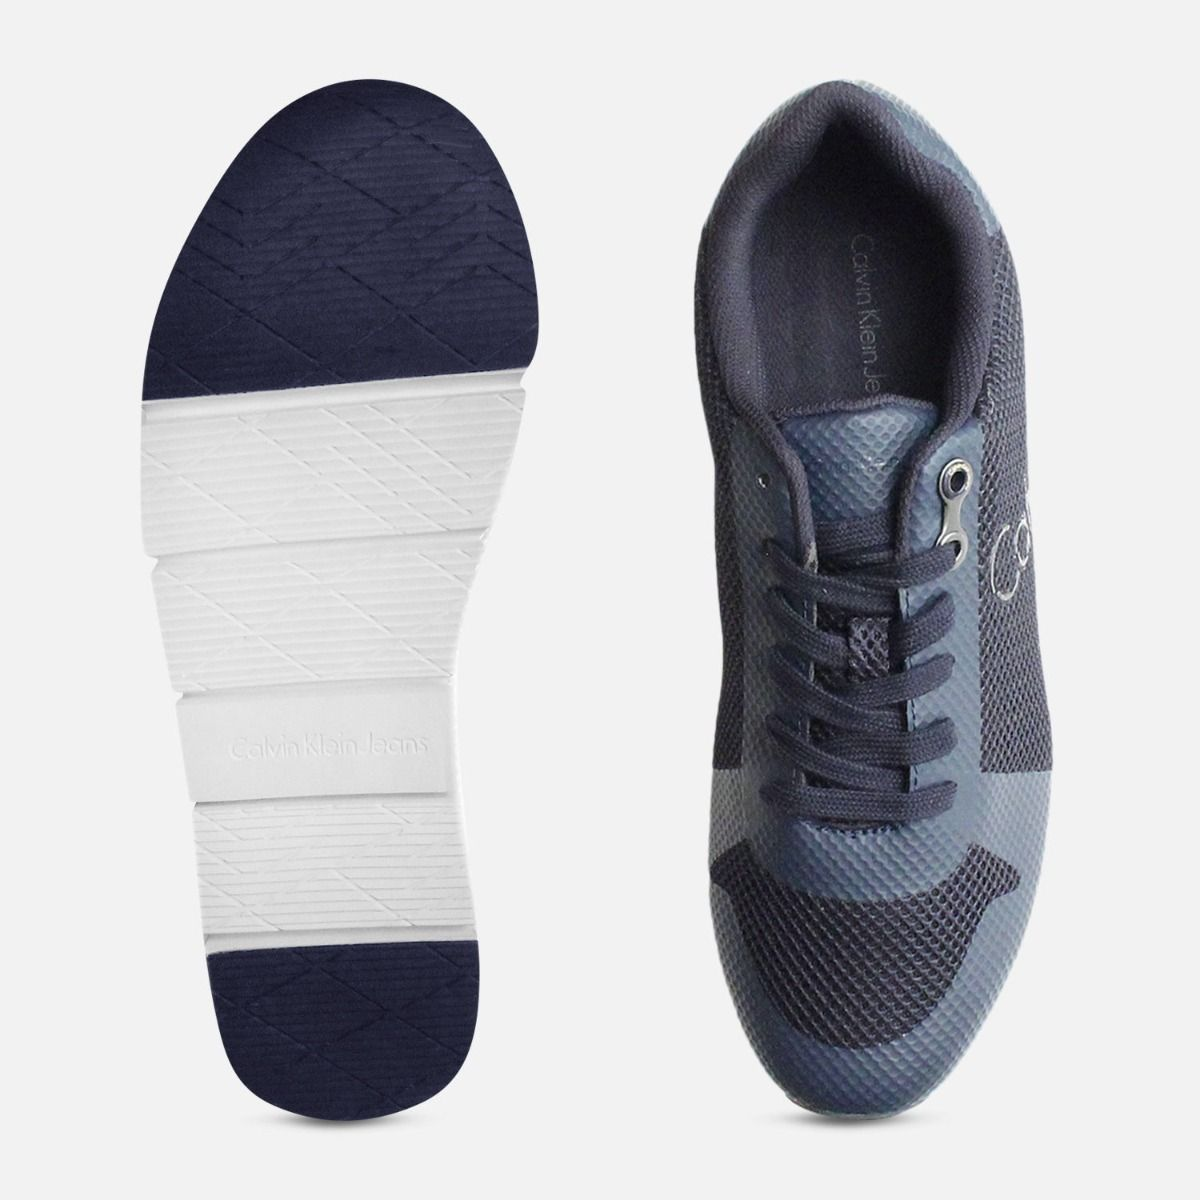 Navy Blue Calvin Klein Jacques Sneakers for Men